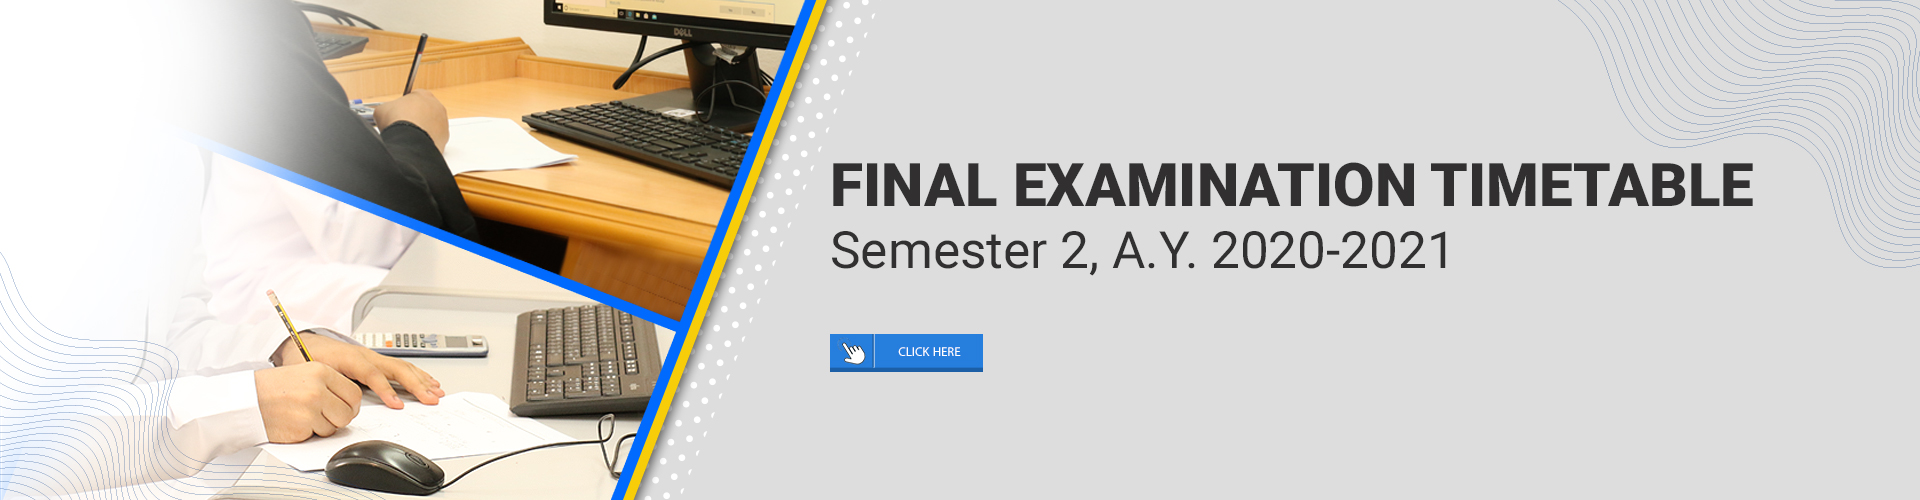 Final Examination Timetable - Semester 2 AY 2020-2021